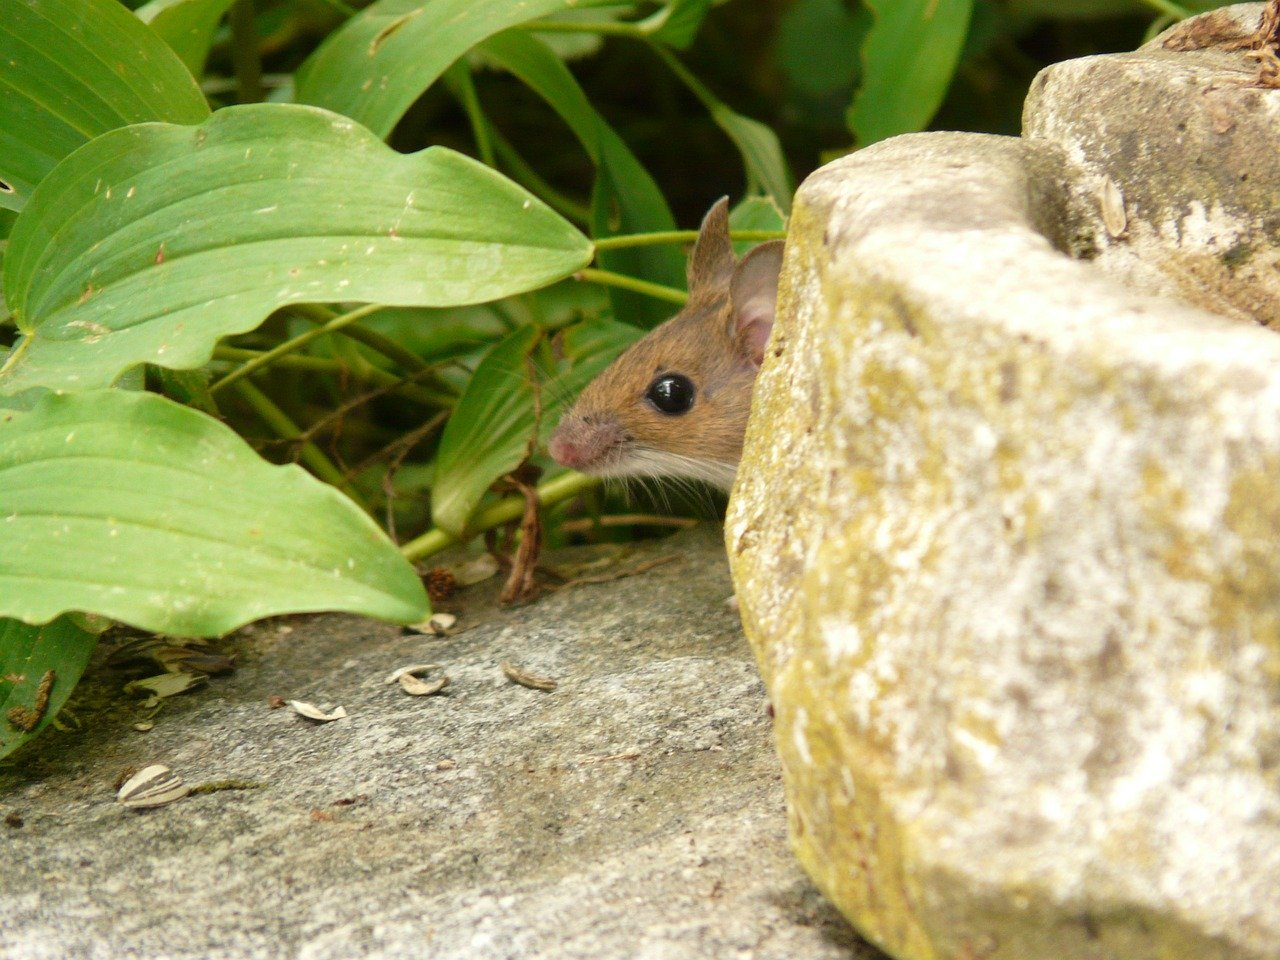 how do Ultrasonic Mice Repellents works